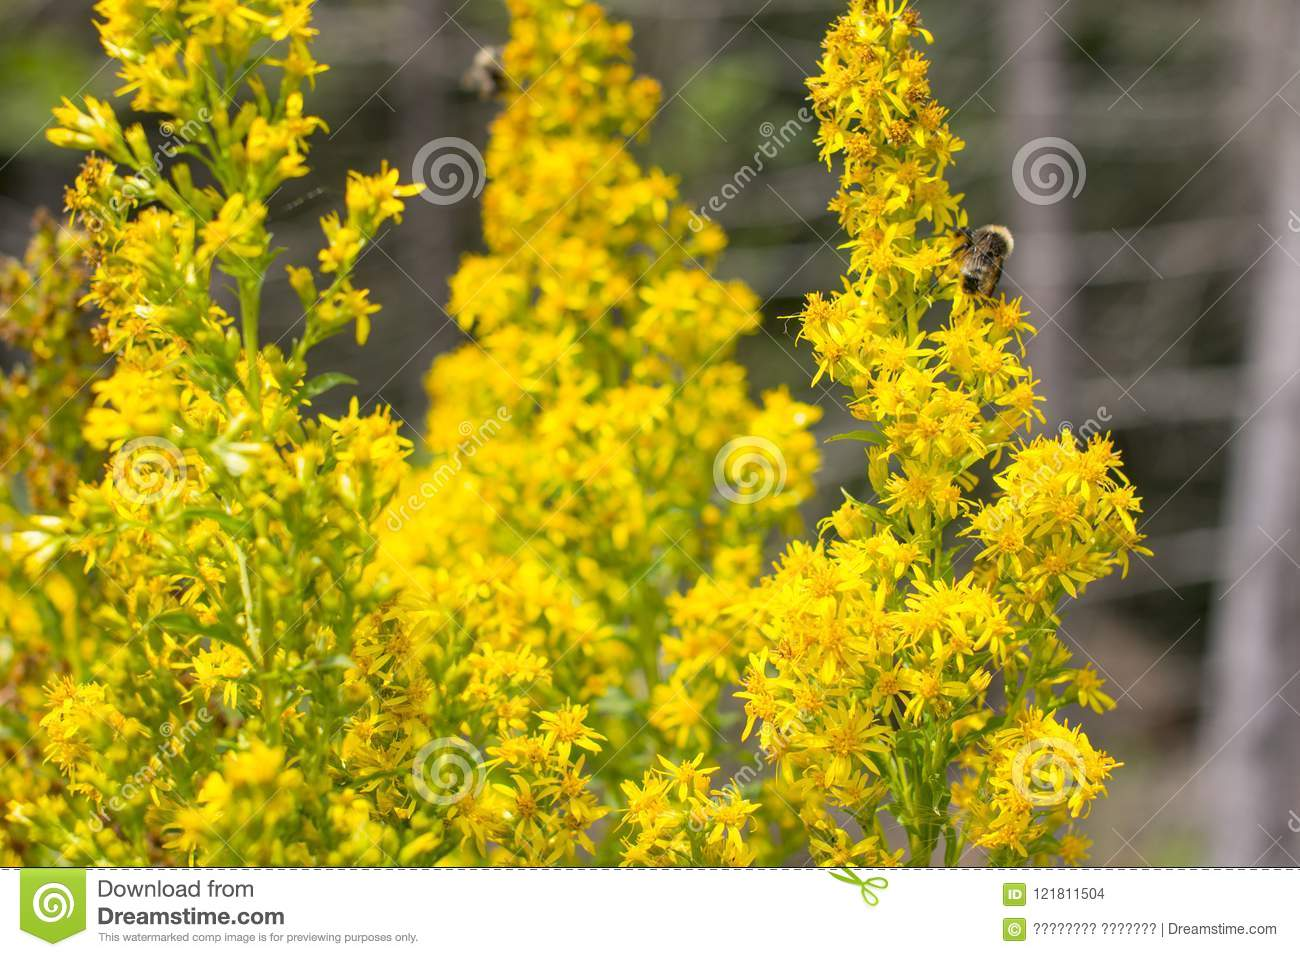 St Johns Wort Is A Yellow Healing Flower Stock Photo Image Of